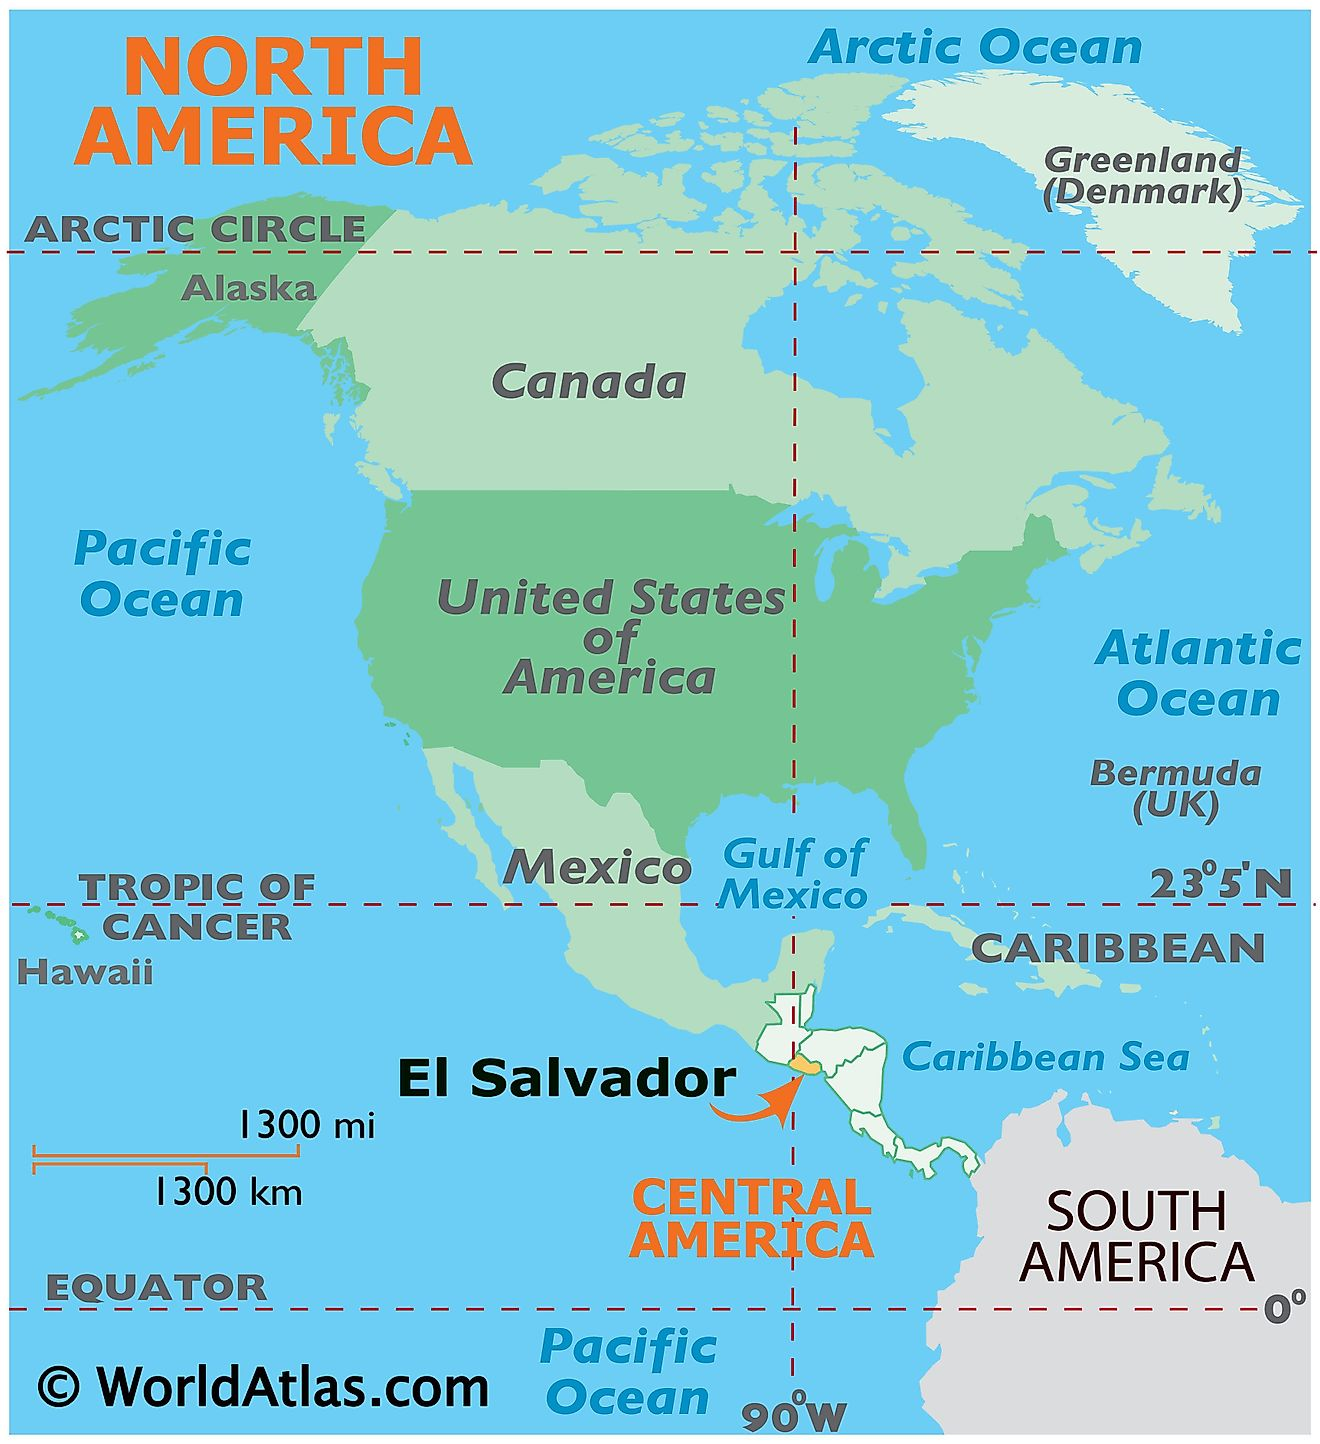 Map showing location of El Salvador in the world.